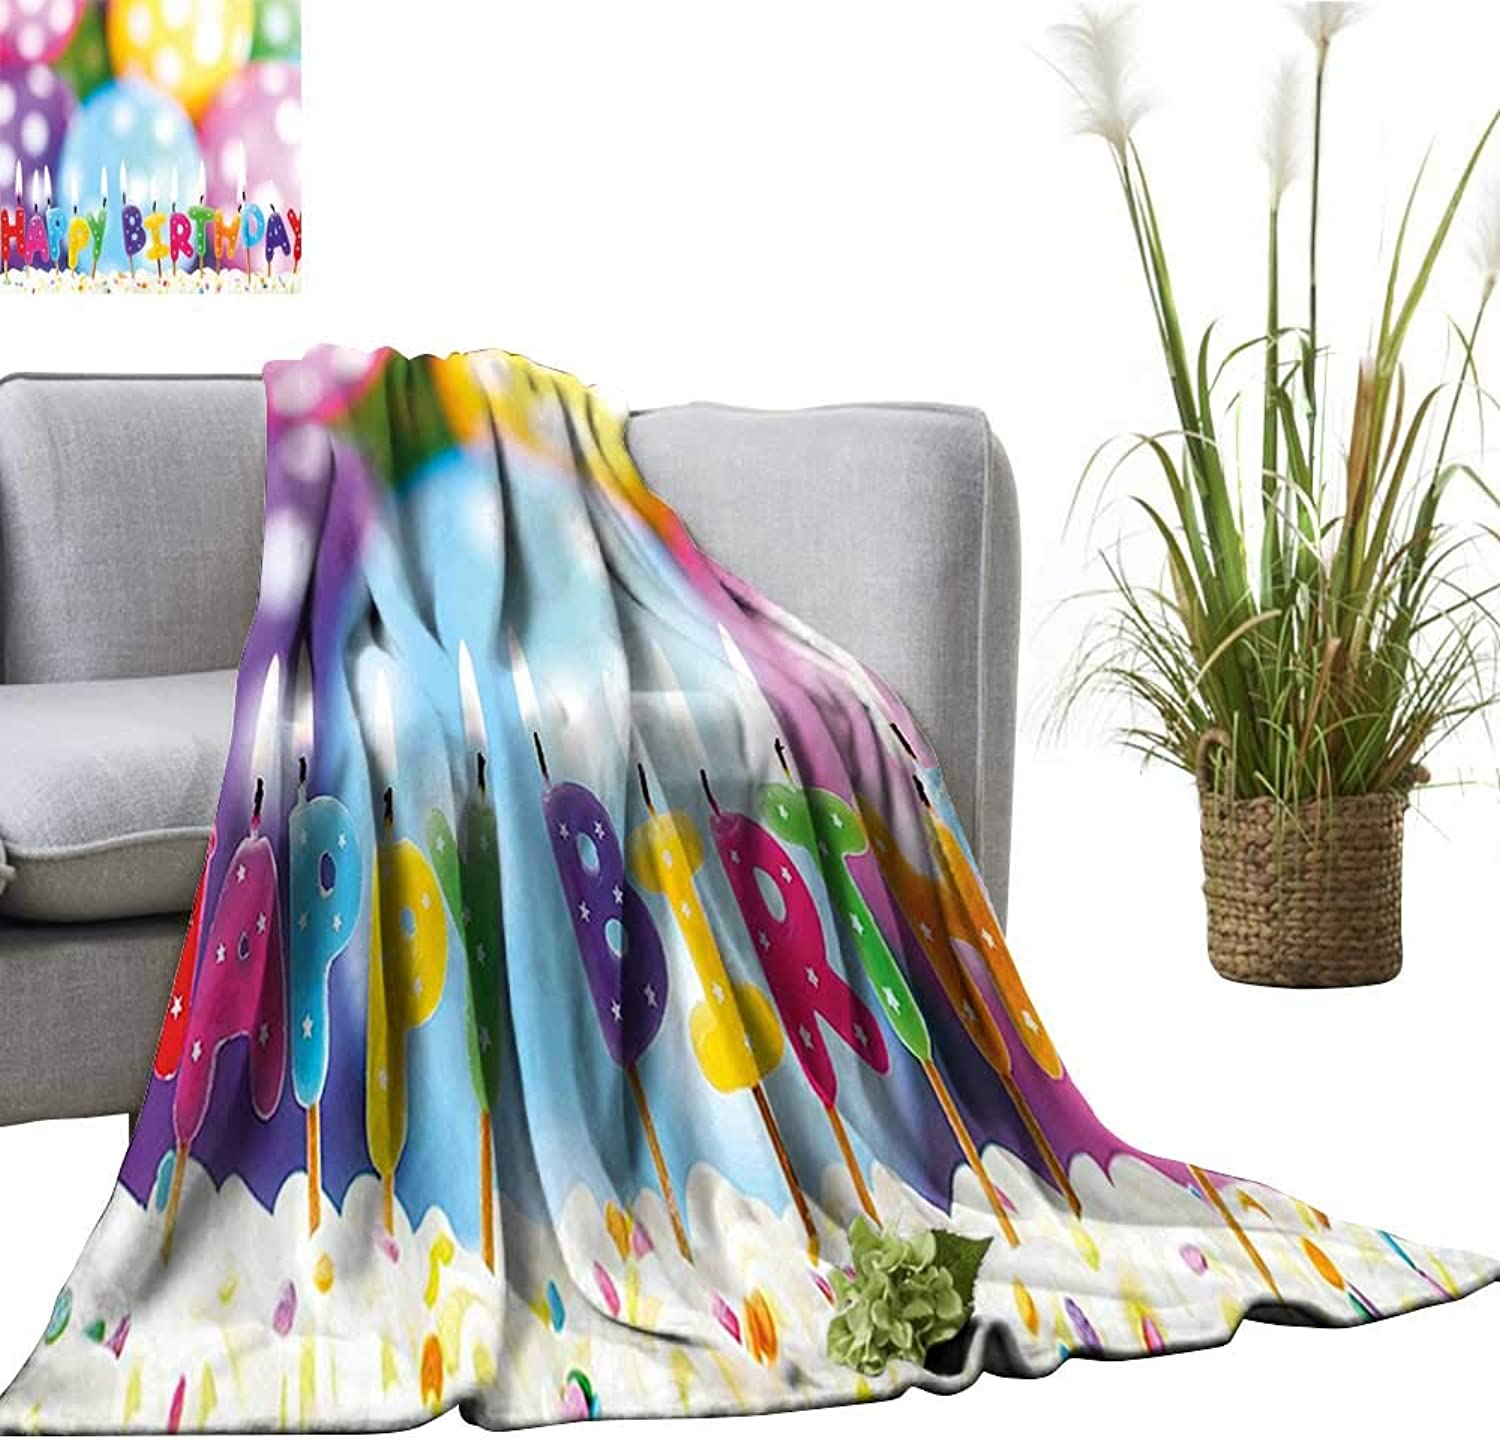 YOYI Baby Blanket for Kids colorful Candles on Party Cake with Abstract bluerry Backdrop Indoor Outdoor, Comfortable for All Seasons 60 x63